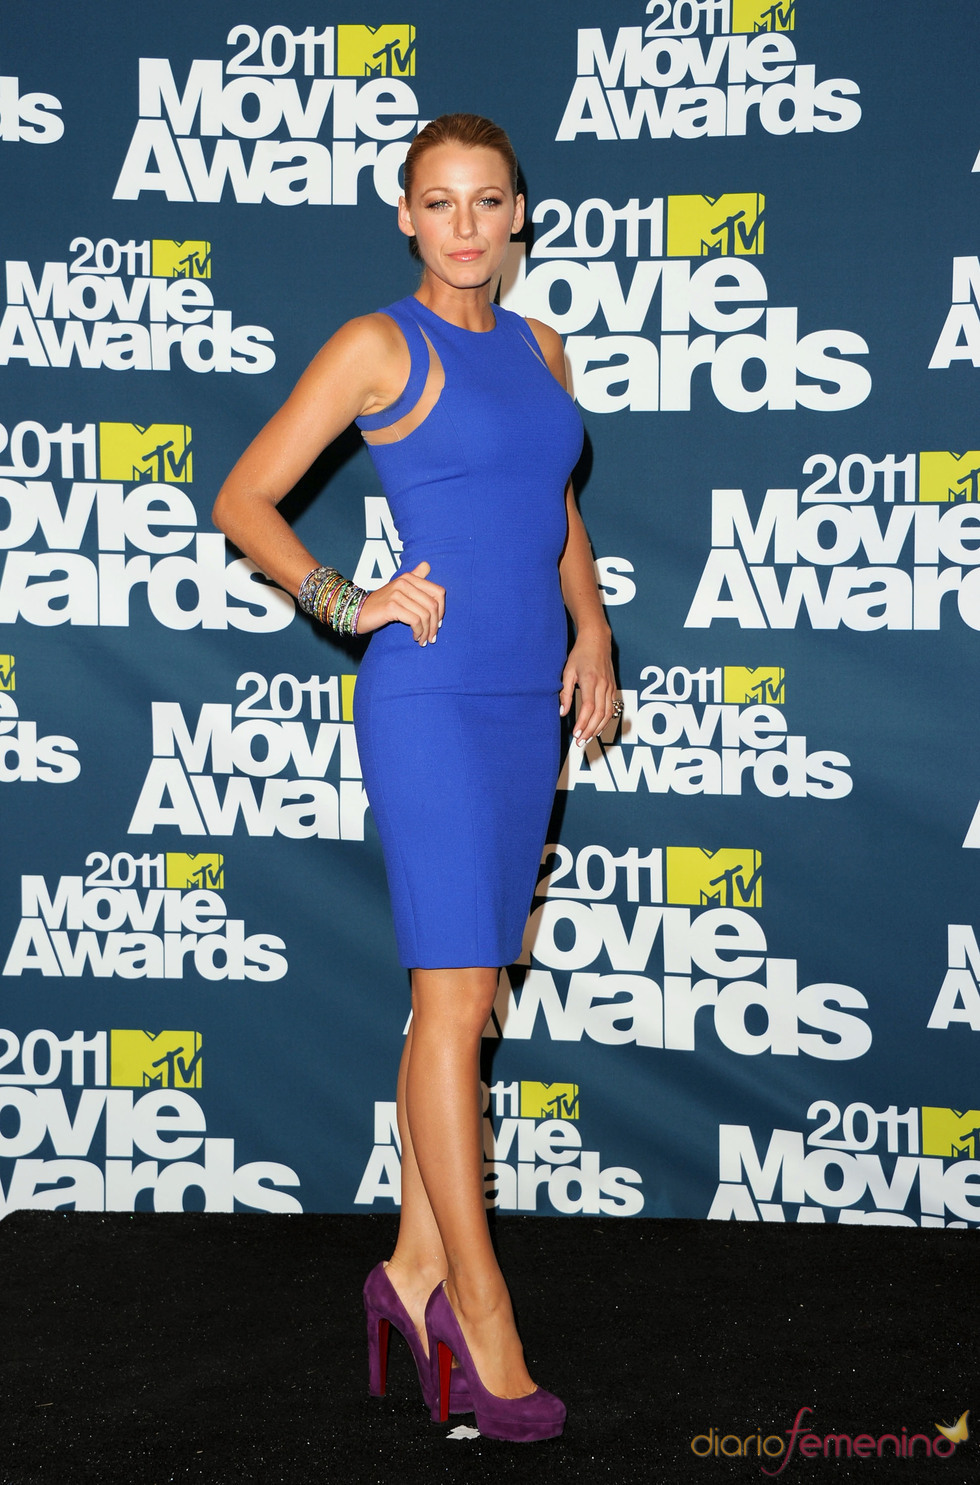 Blake Lively a su llegada a los premios MTV Movie Awards 2011